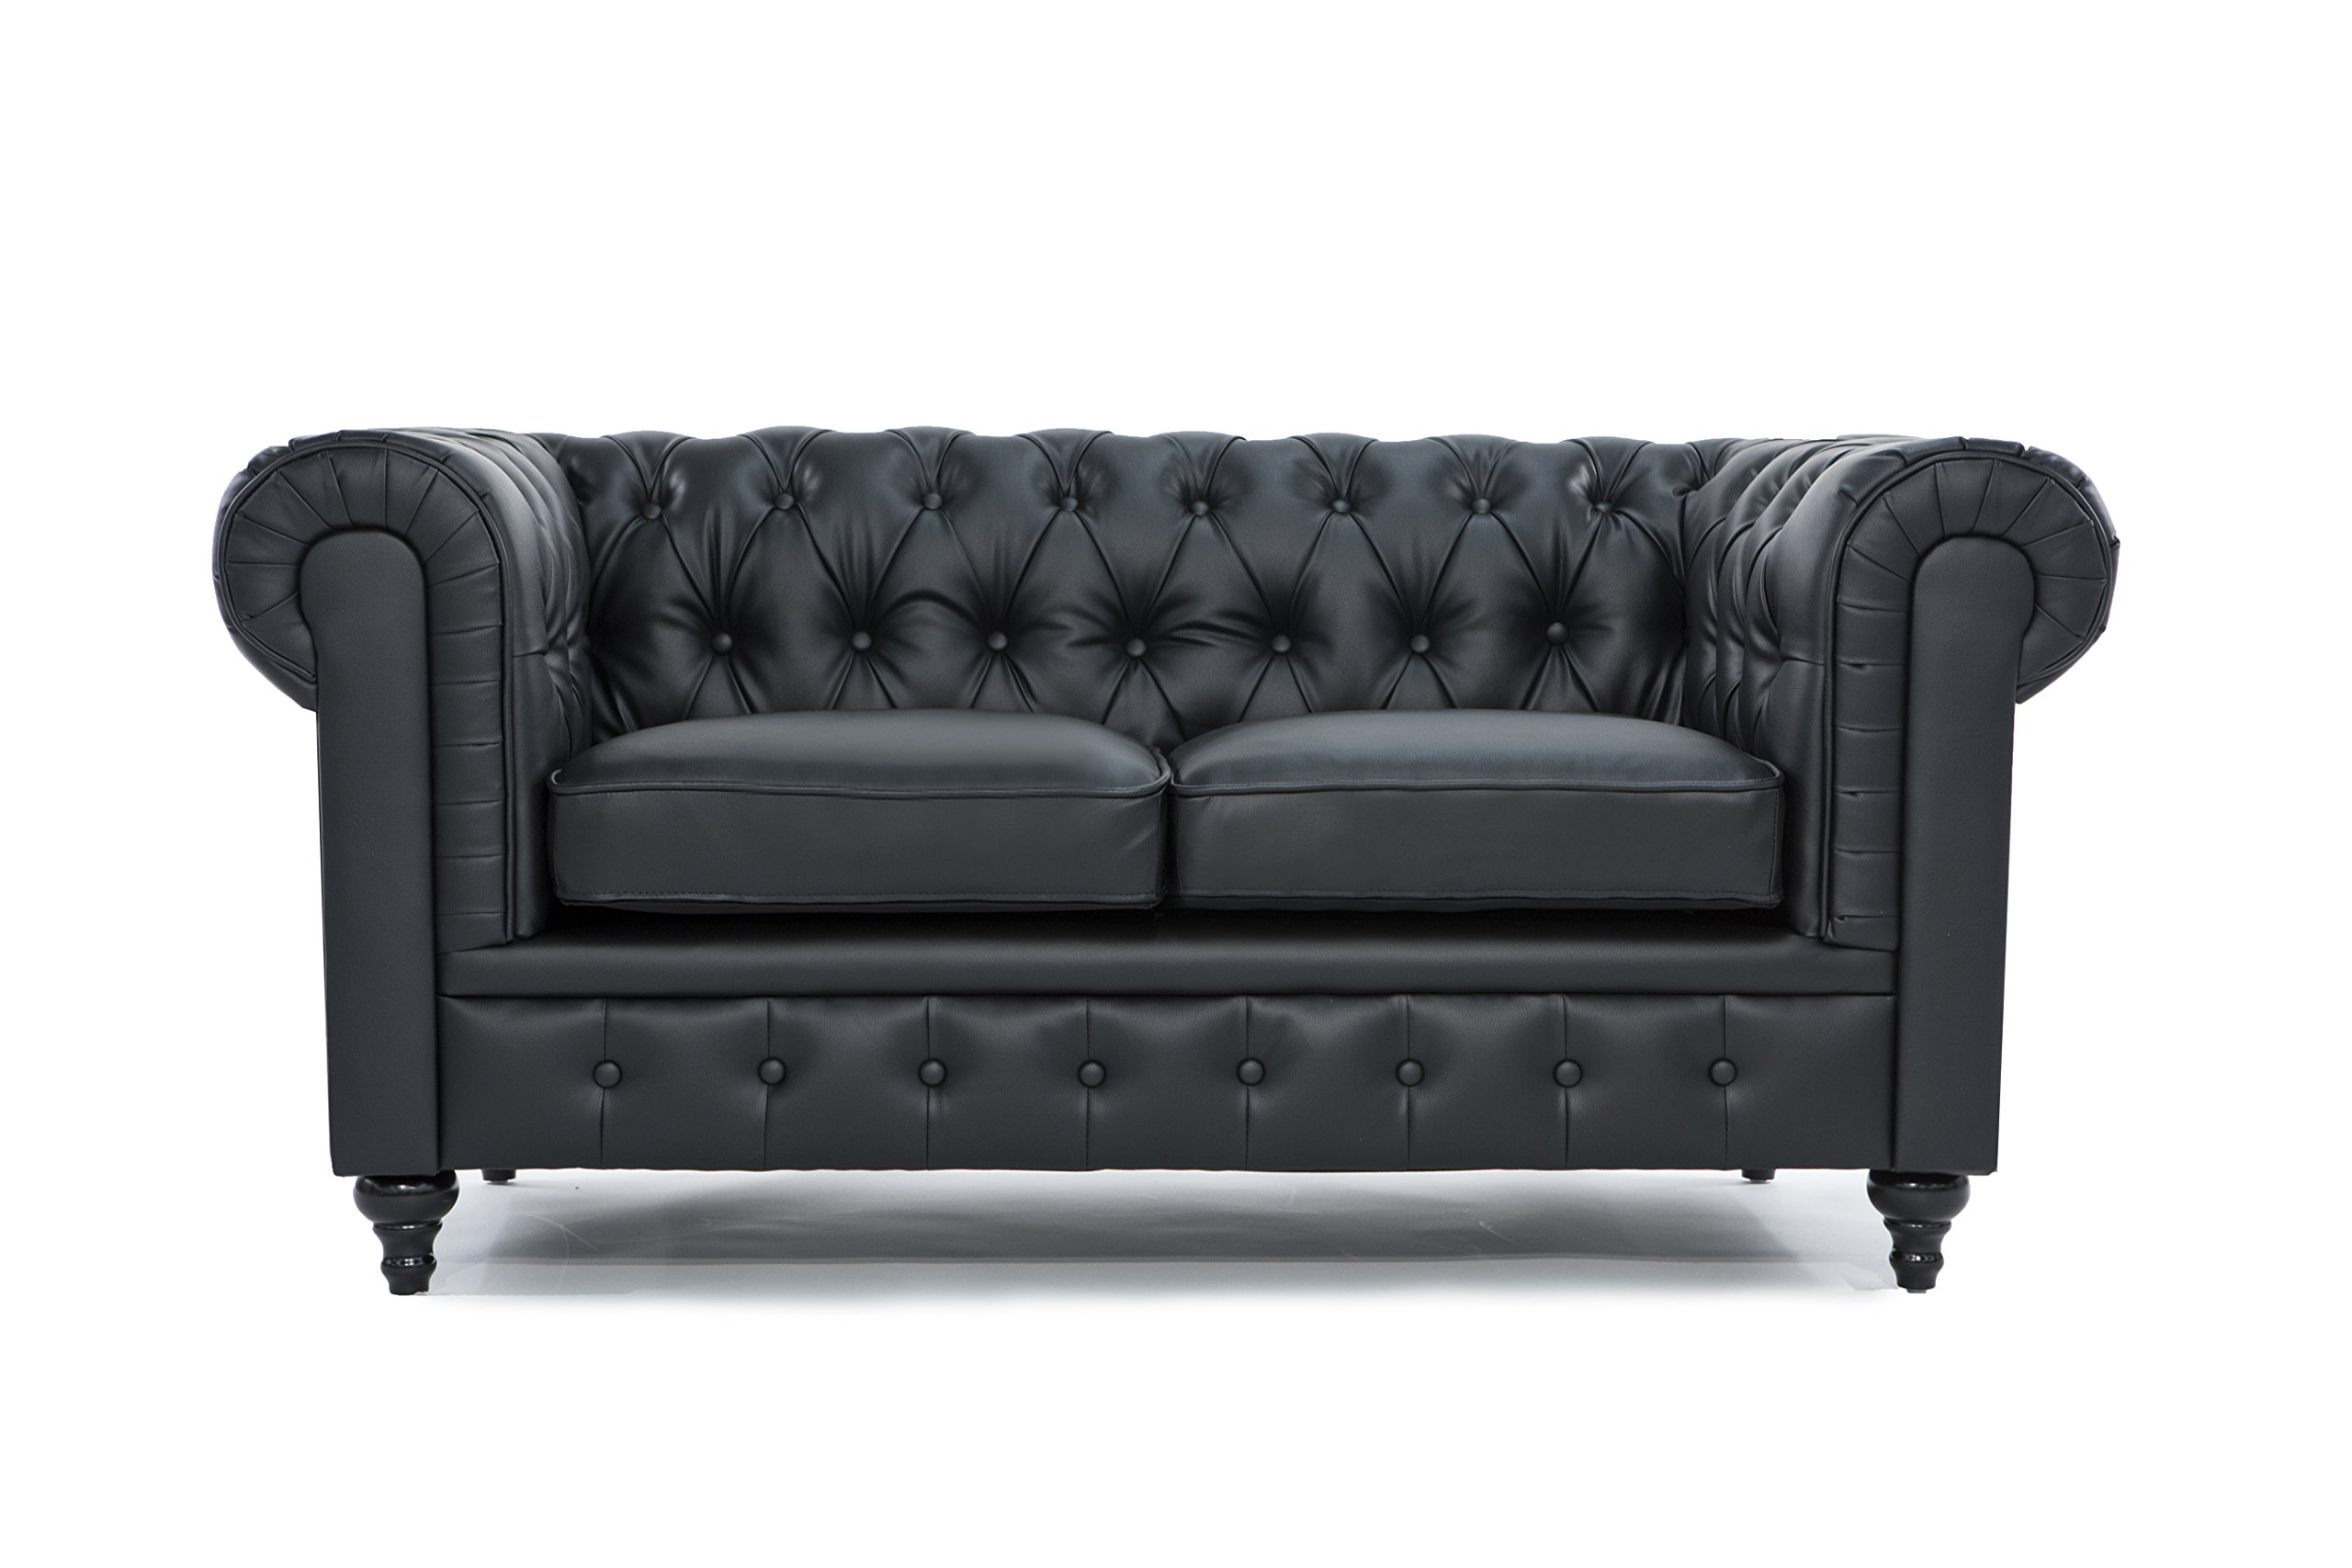 Classic Scroll Arm Tufted Bonded Leather Chesterfield 2 Seater Loveseat (Black) by Divano Roma Furniture